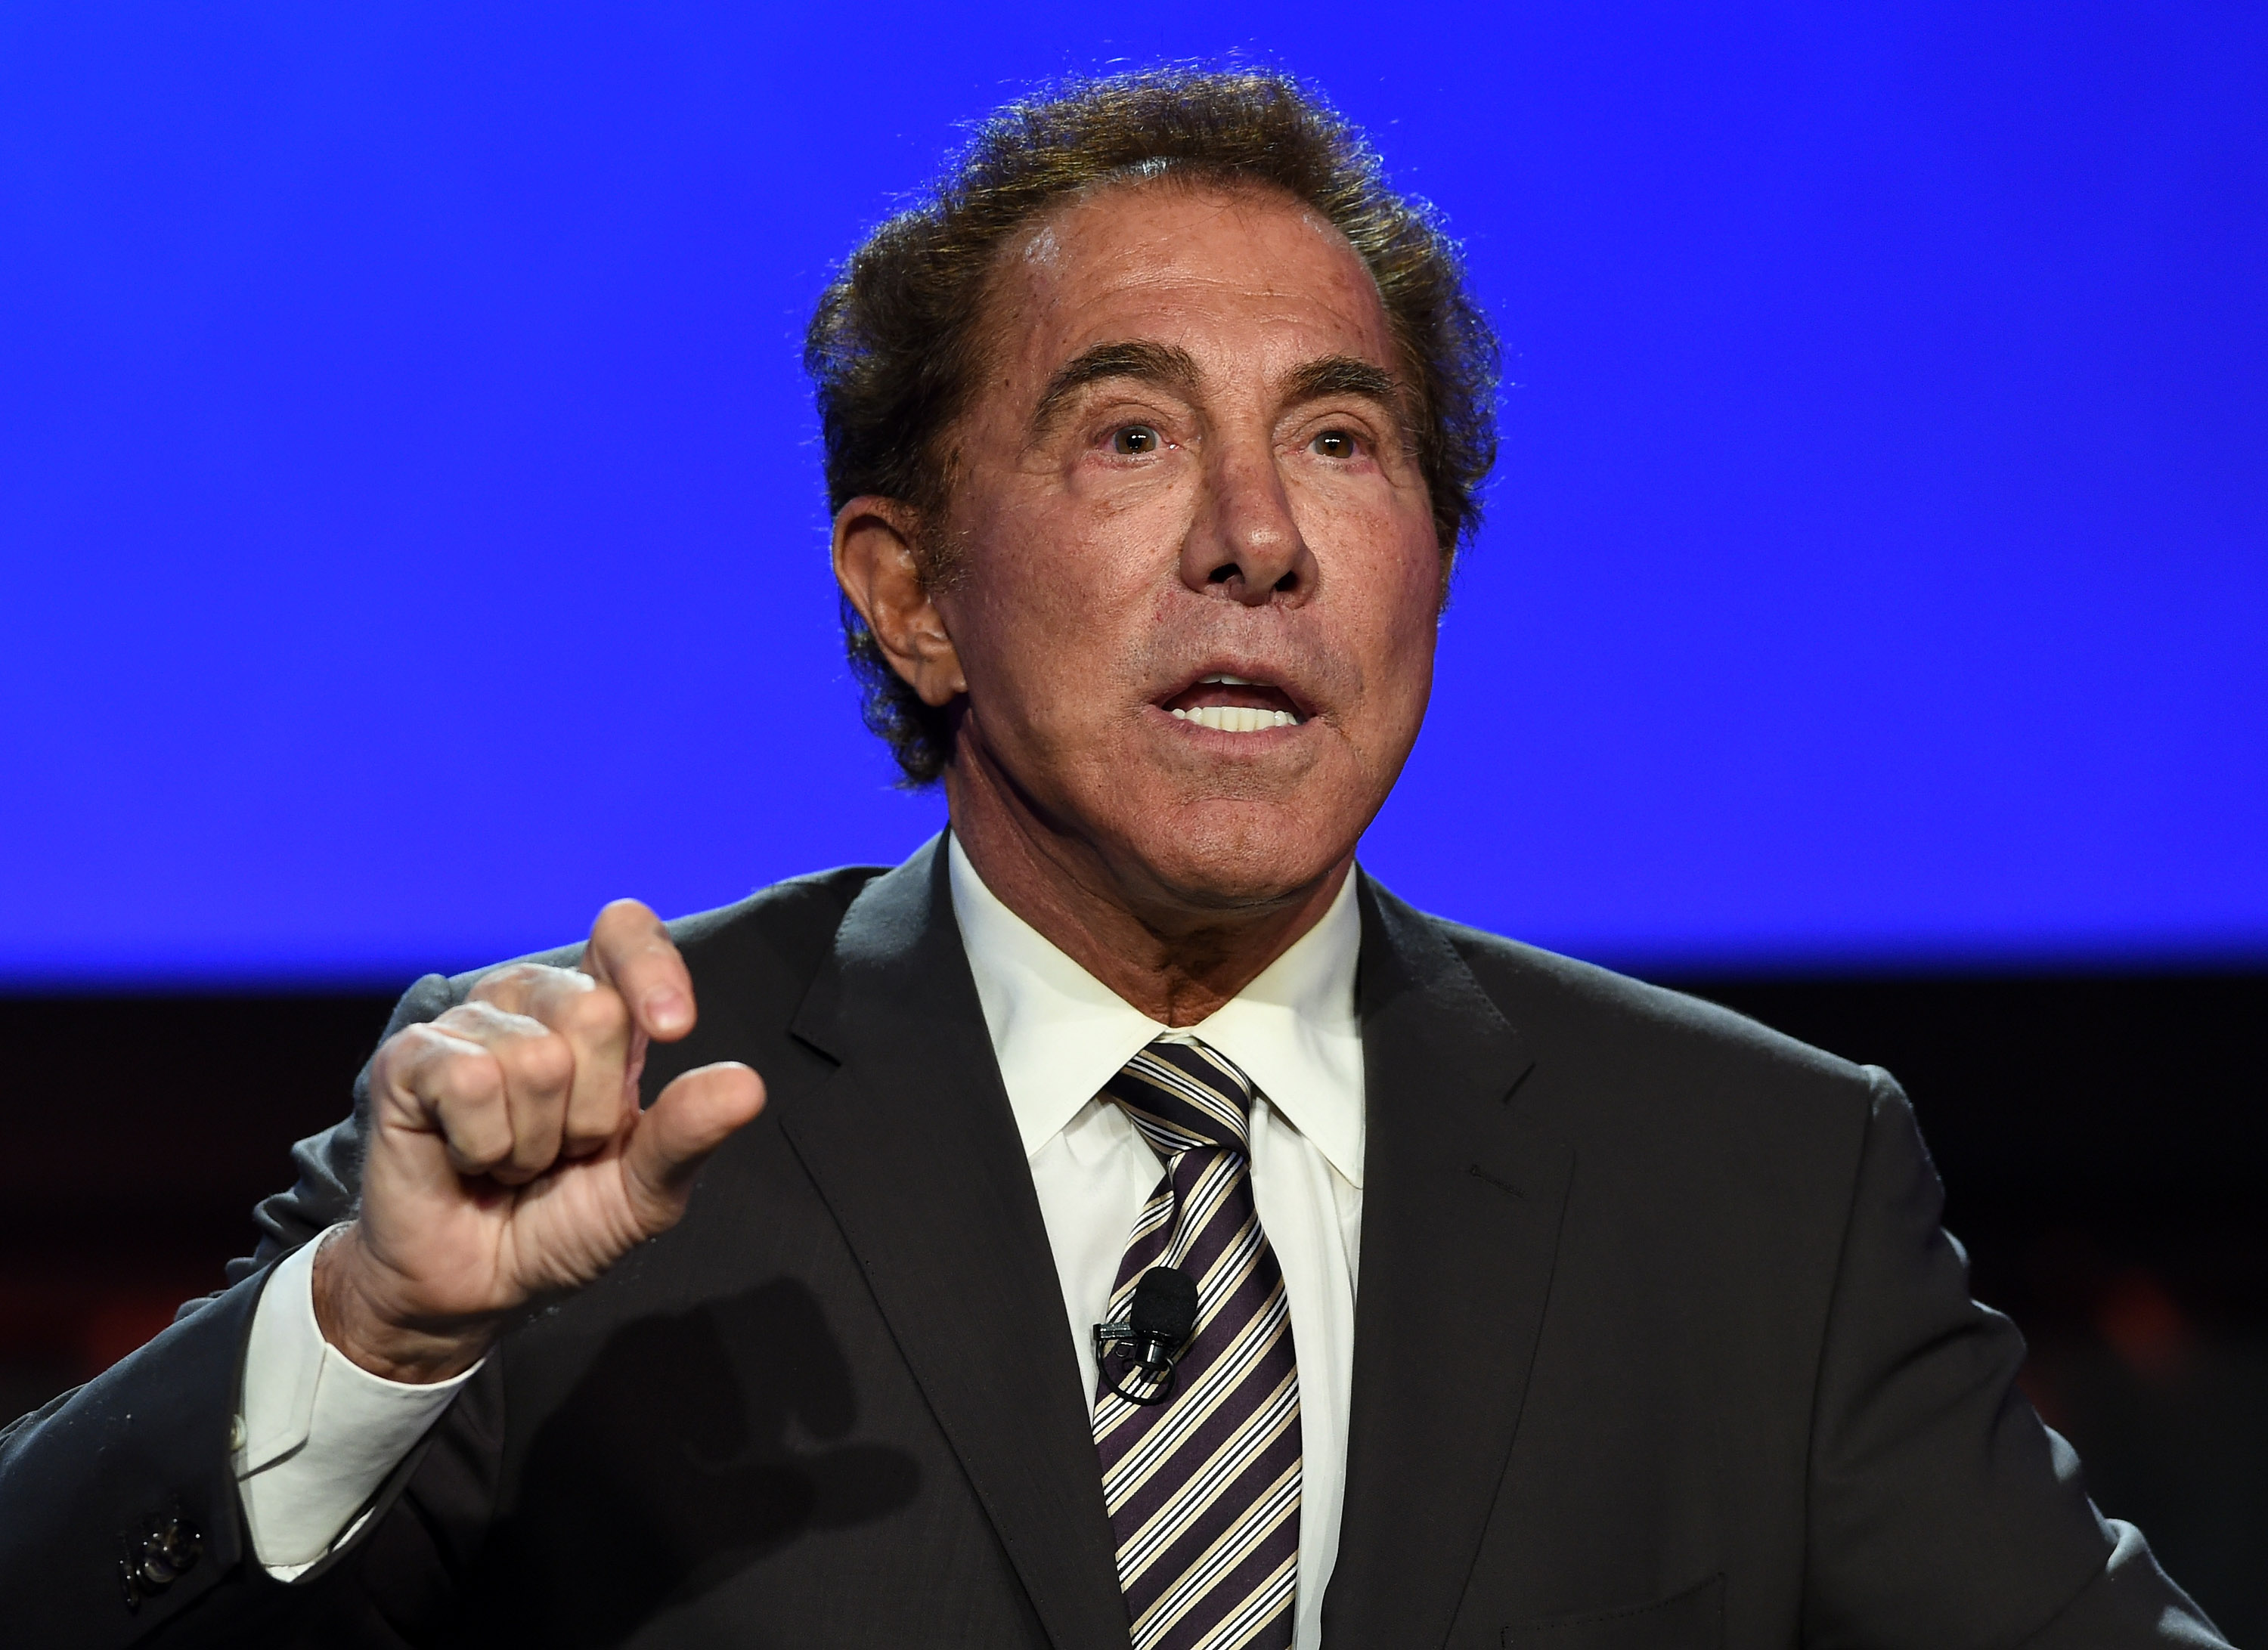 Wynn Resorts Chairman and CEO Steve Wynn speaks at the Global Gaming Expo (G2E) 2014 at The Venetian Las Vegas on September 30, 2014 in Las Vegas, Nevada.